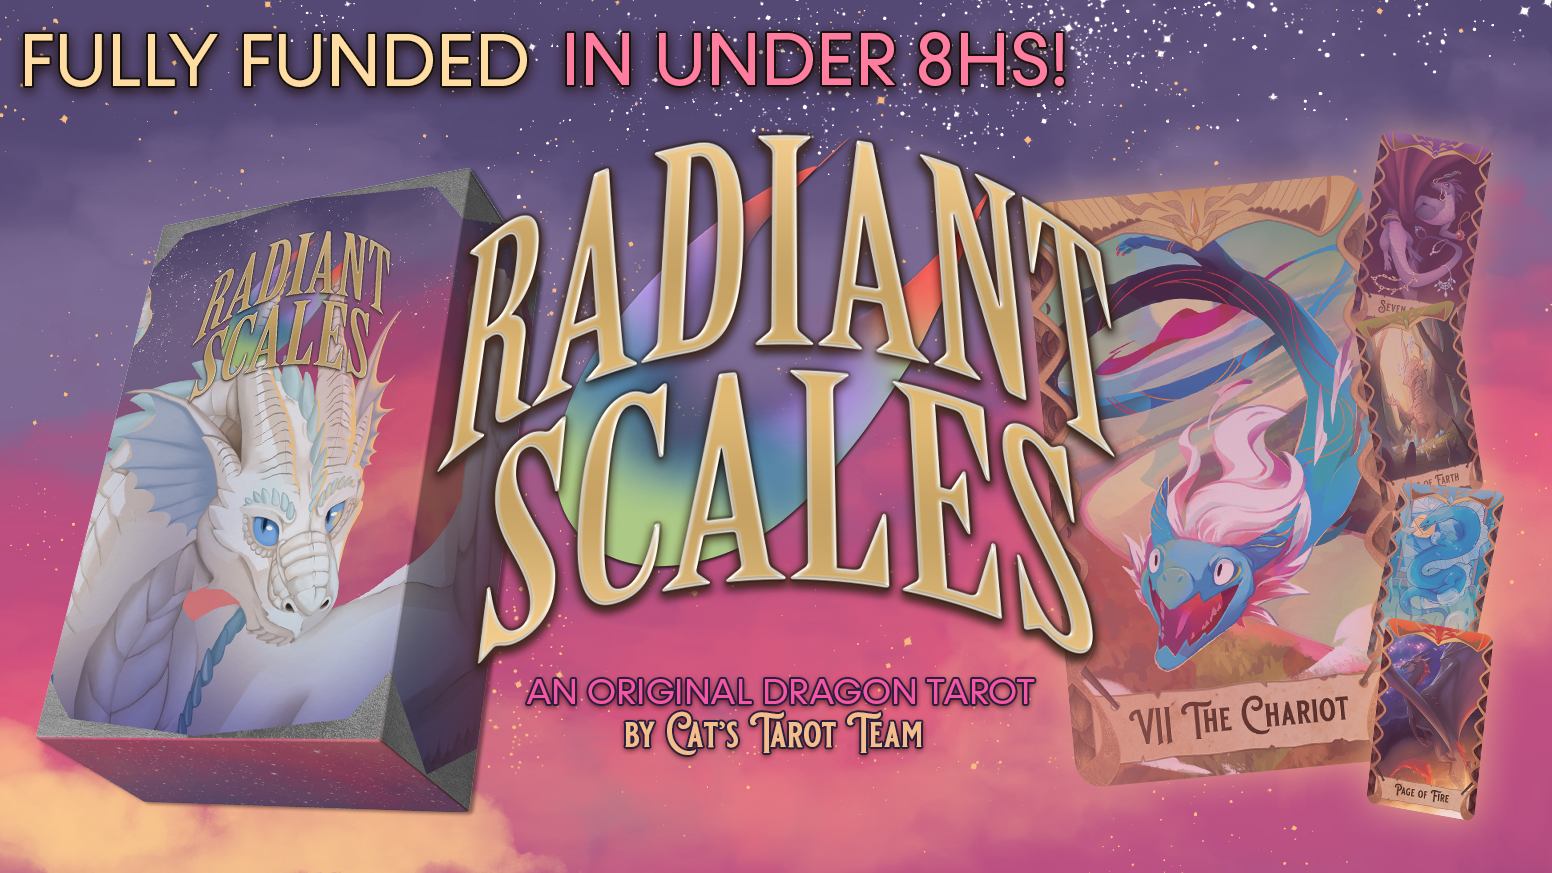 Radiant Scales is a collaborative original tarot deck centered around dragons and their connections with the elements.